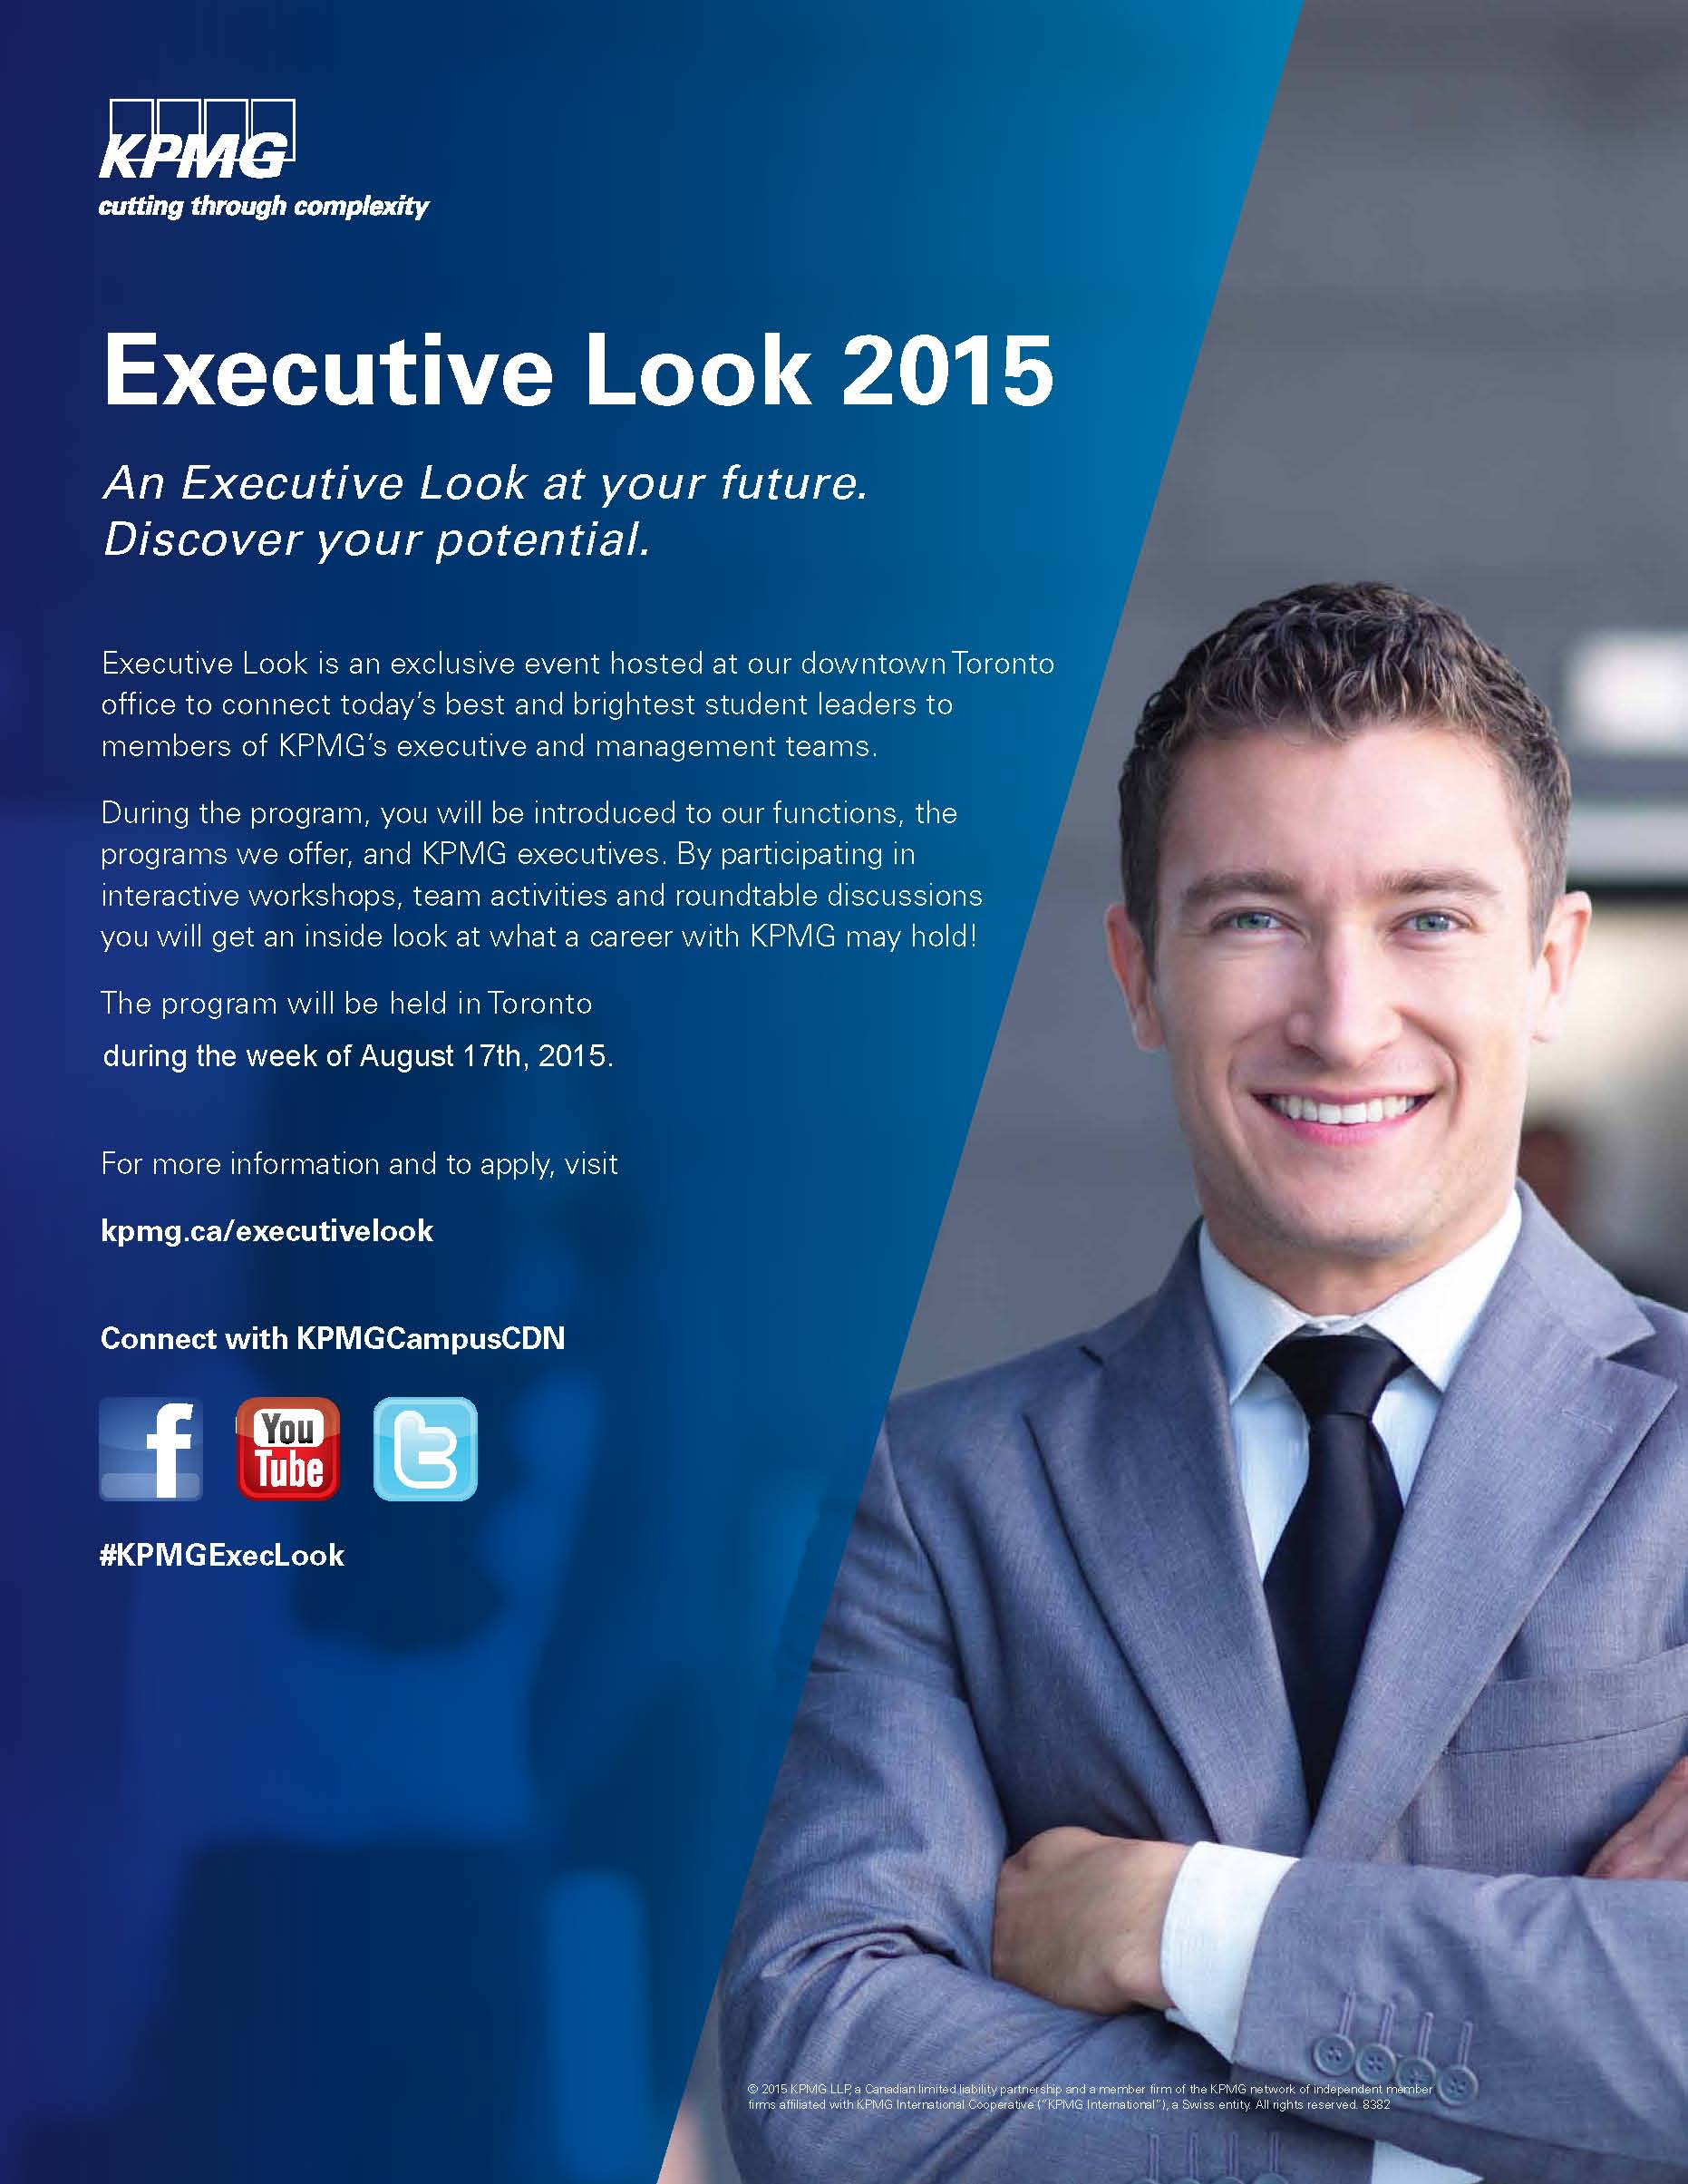 KPMG's Executive Look Summer Conference Apply To Participate!